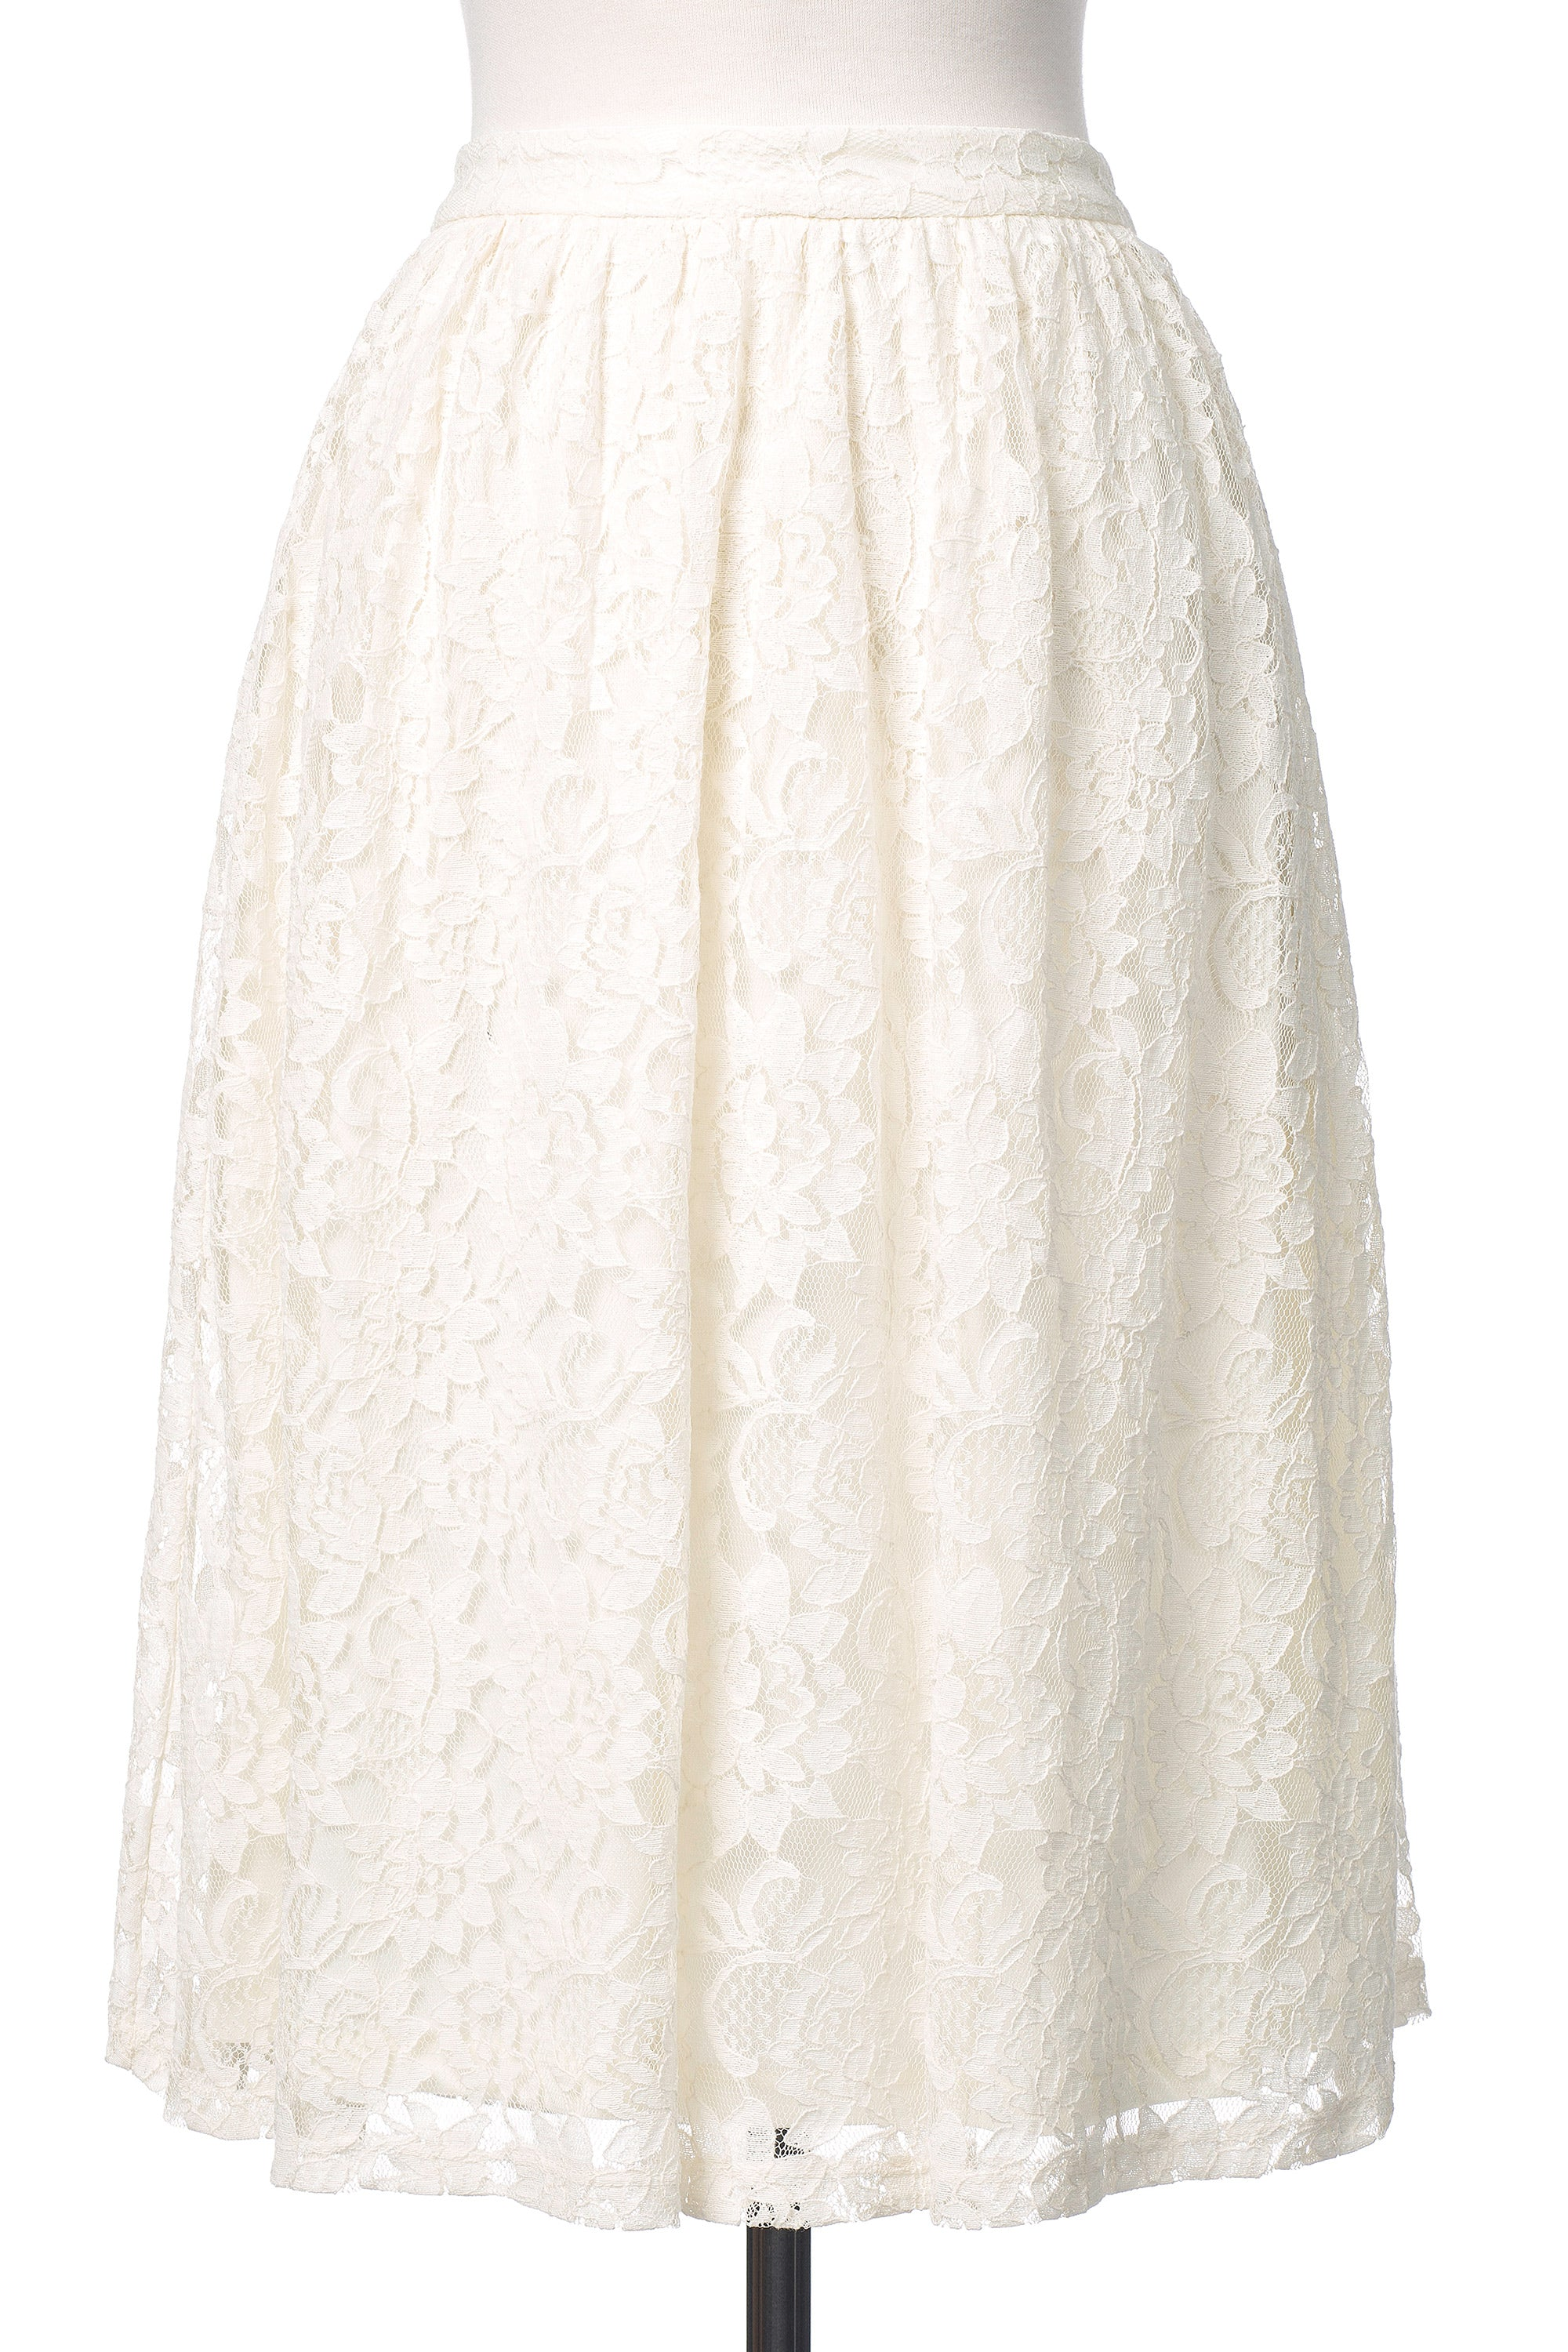 Type 1 Hyacinth Skirt in Cream